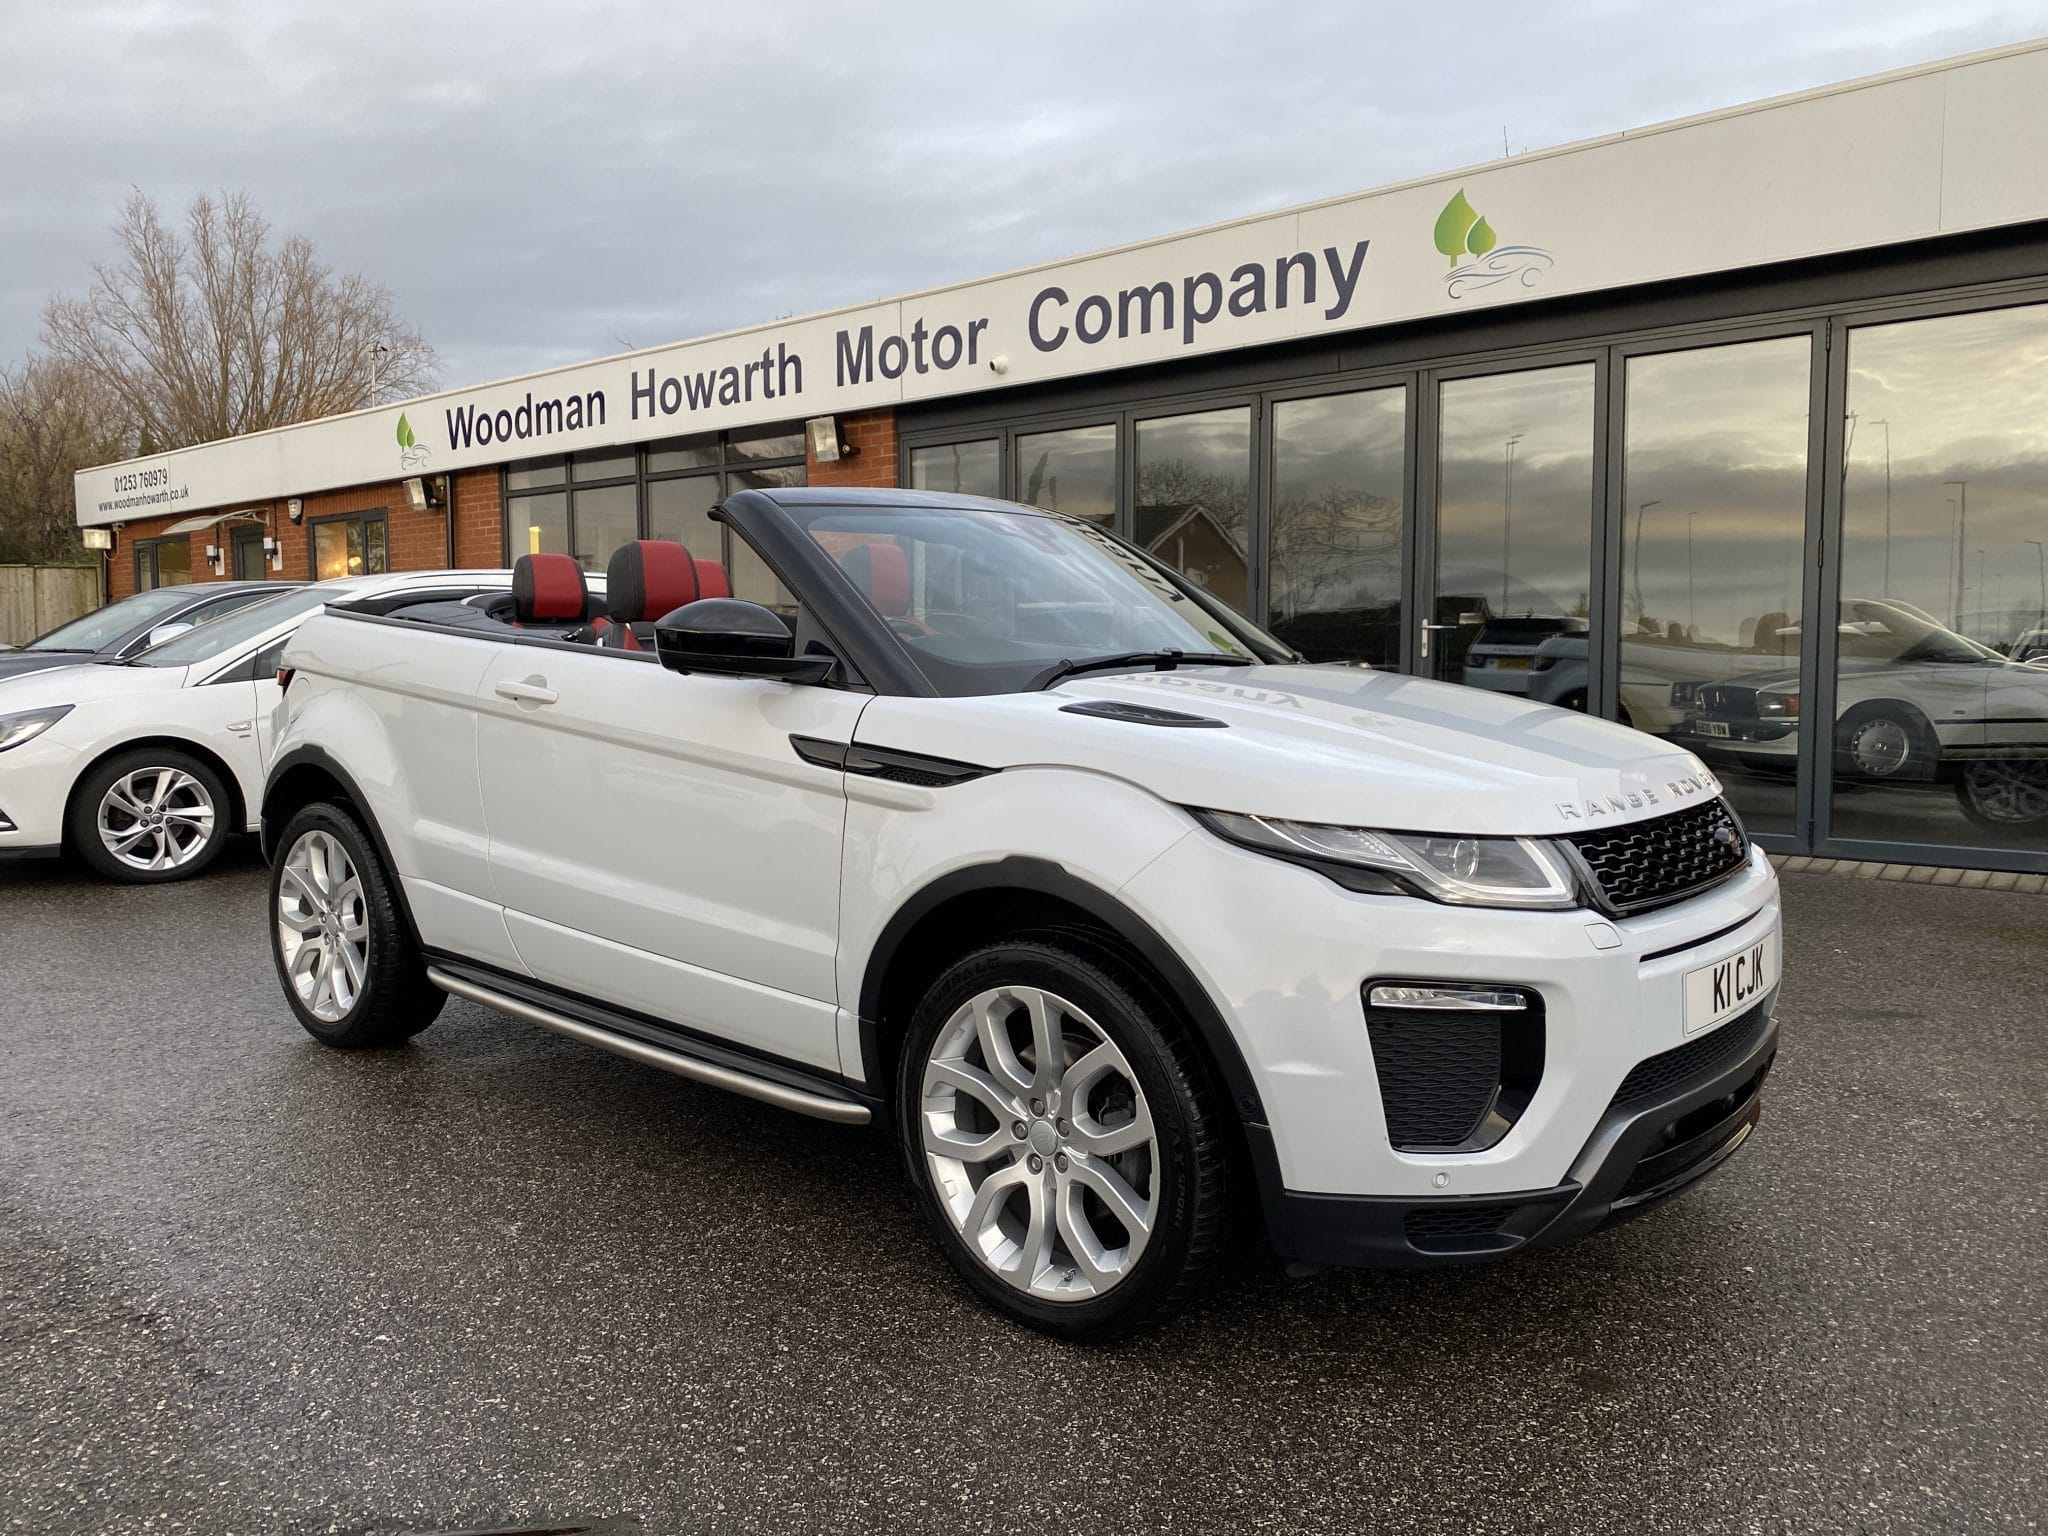 2017 66 RANGE ROVER EVOQUE 2.0TD4 HSE DYNAMIC AUTO 180 BHP CONVERTIBLE 1 Lady Owner 19K Miles High Spec Pristine